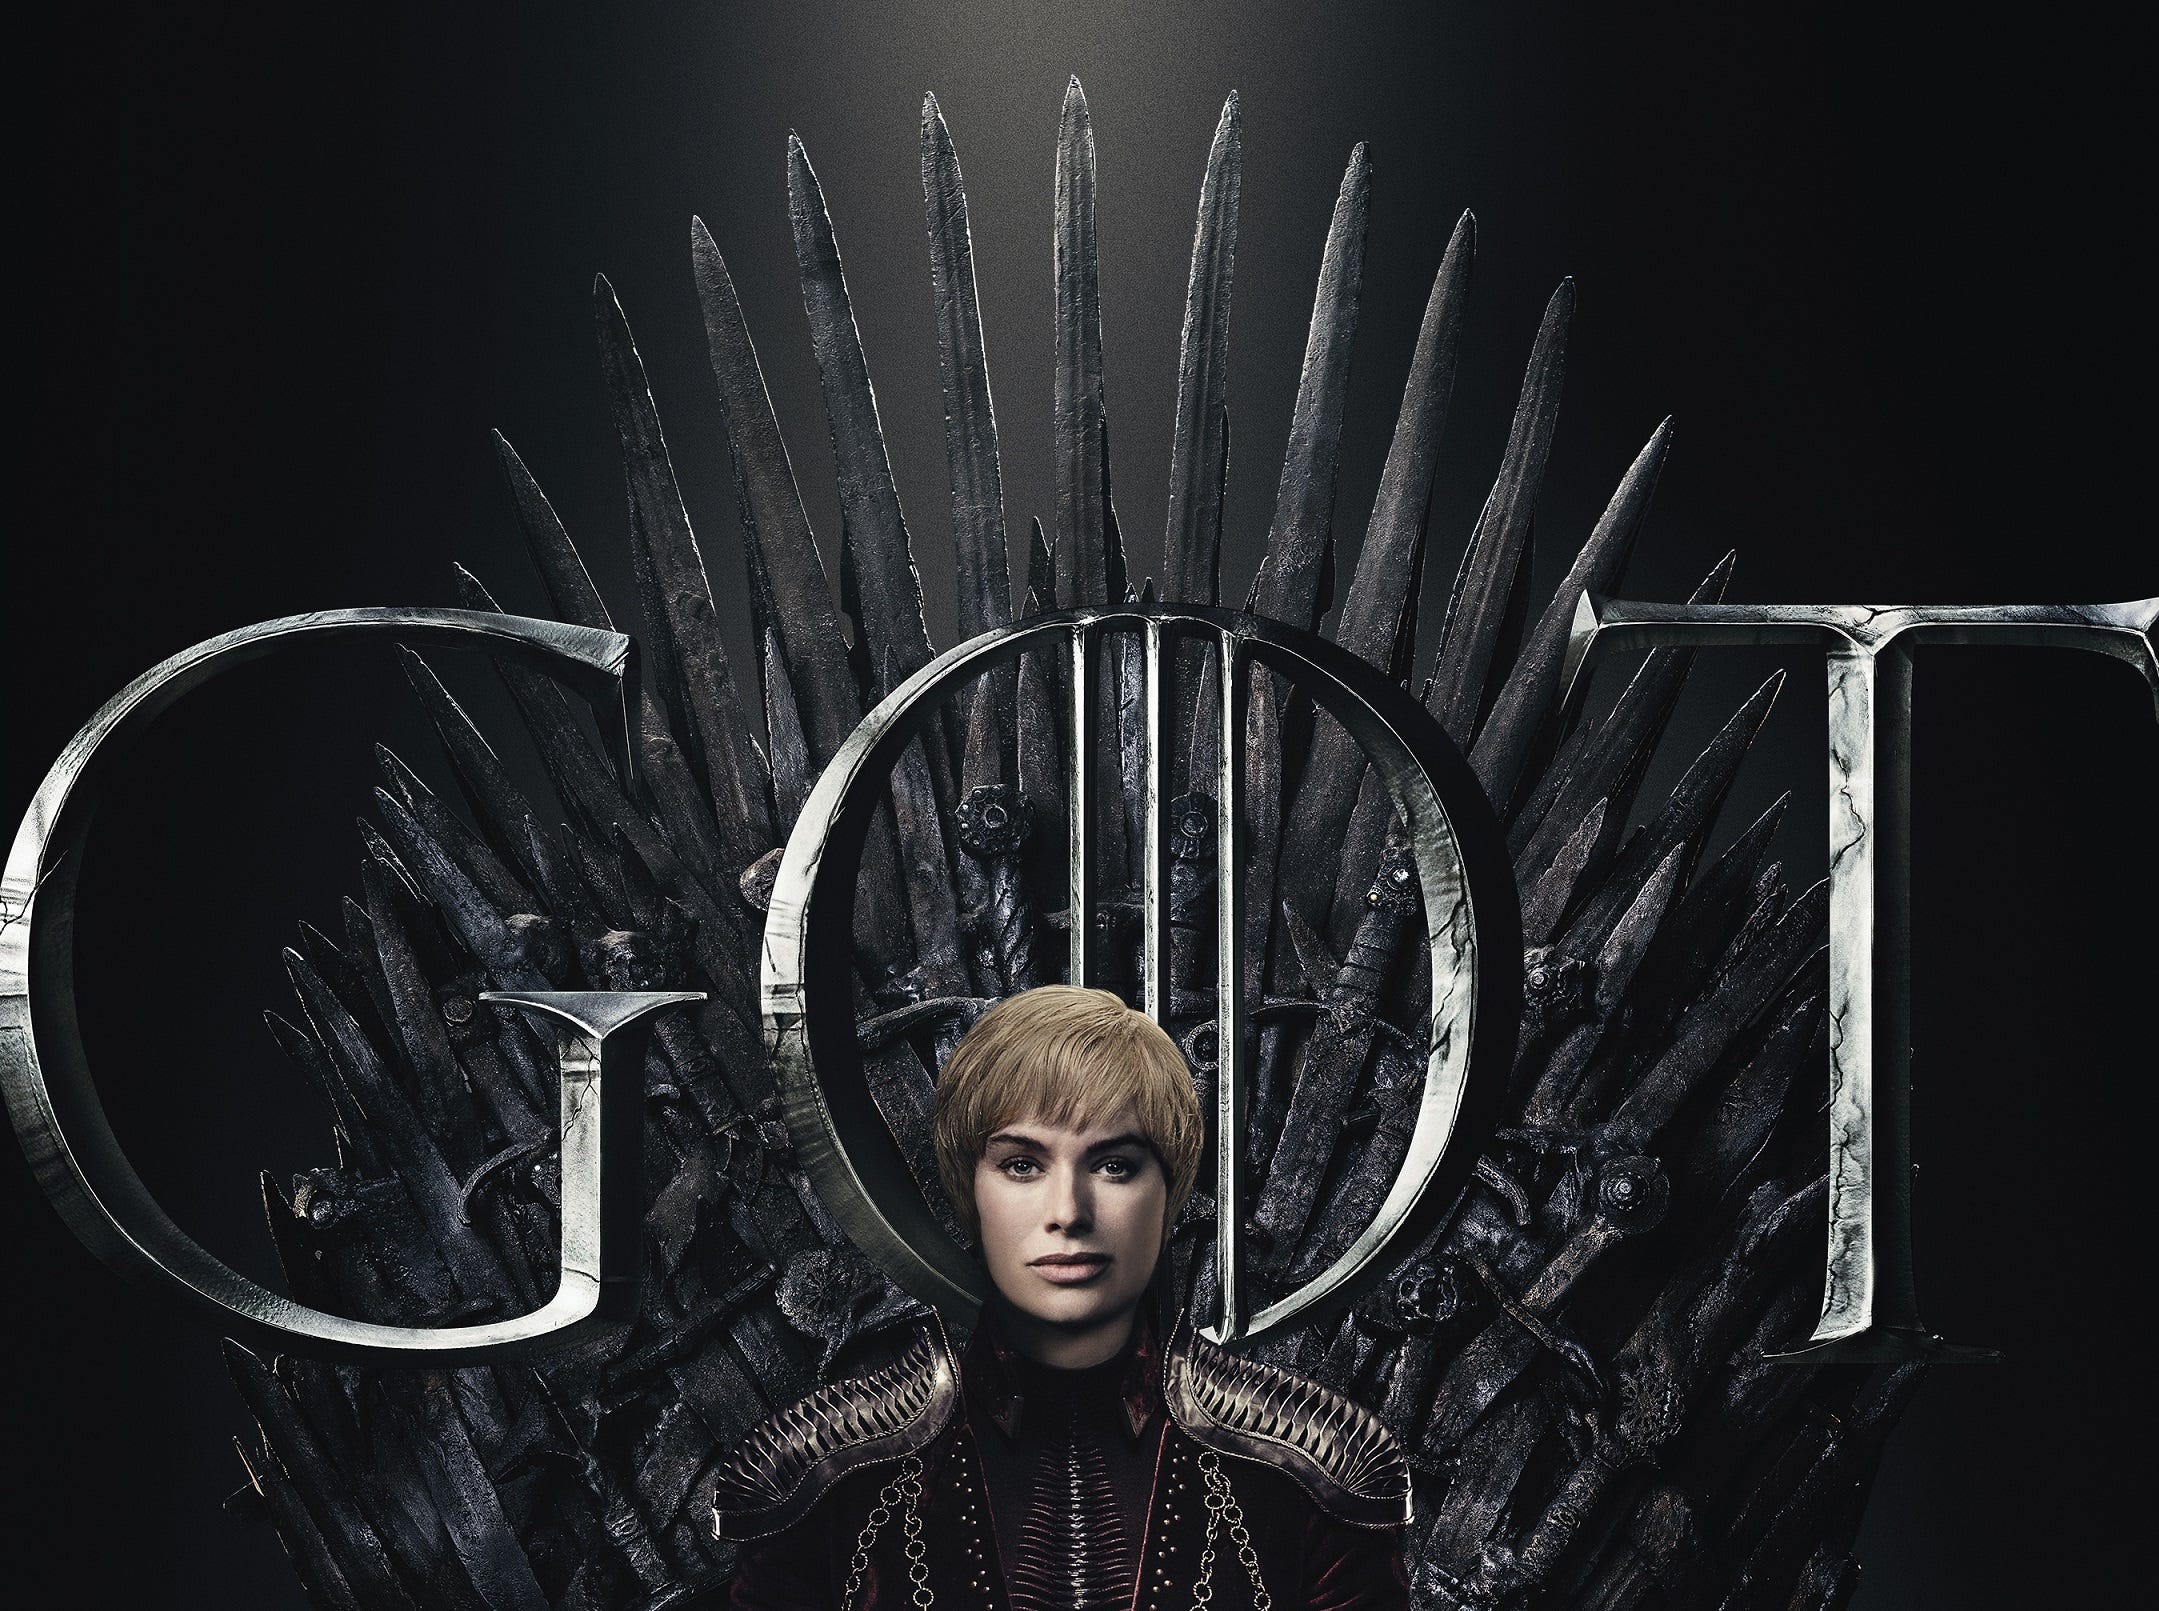 Still rocking the armor-esque dresses and the short hair, Cersei Lannister (Lena Headey) is the only one of these characters who has actually claimed the Iron Throne.